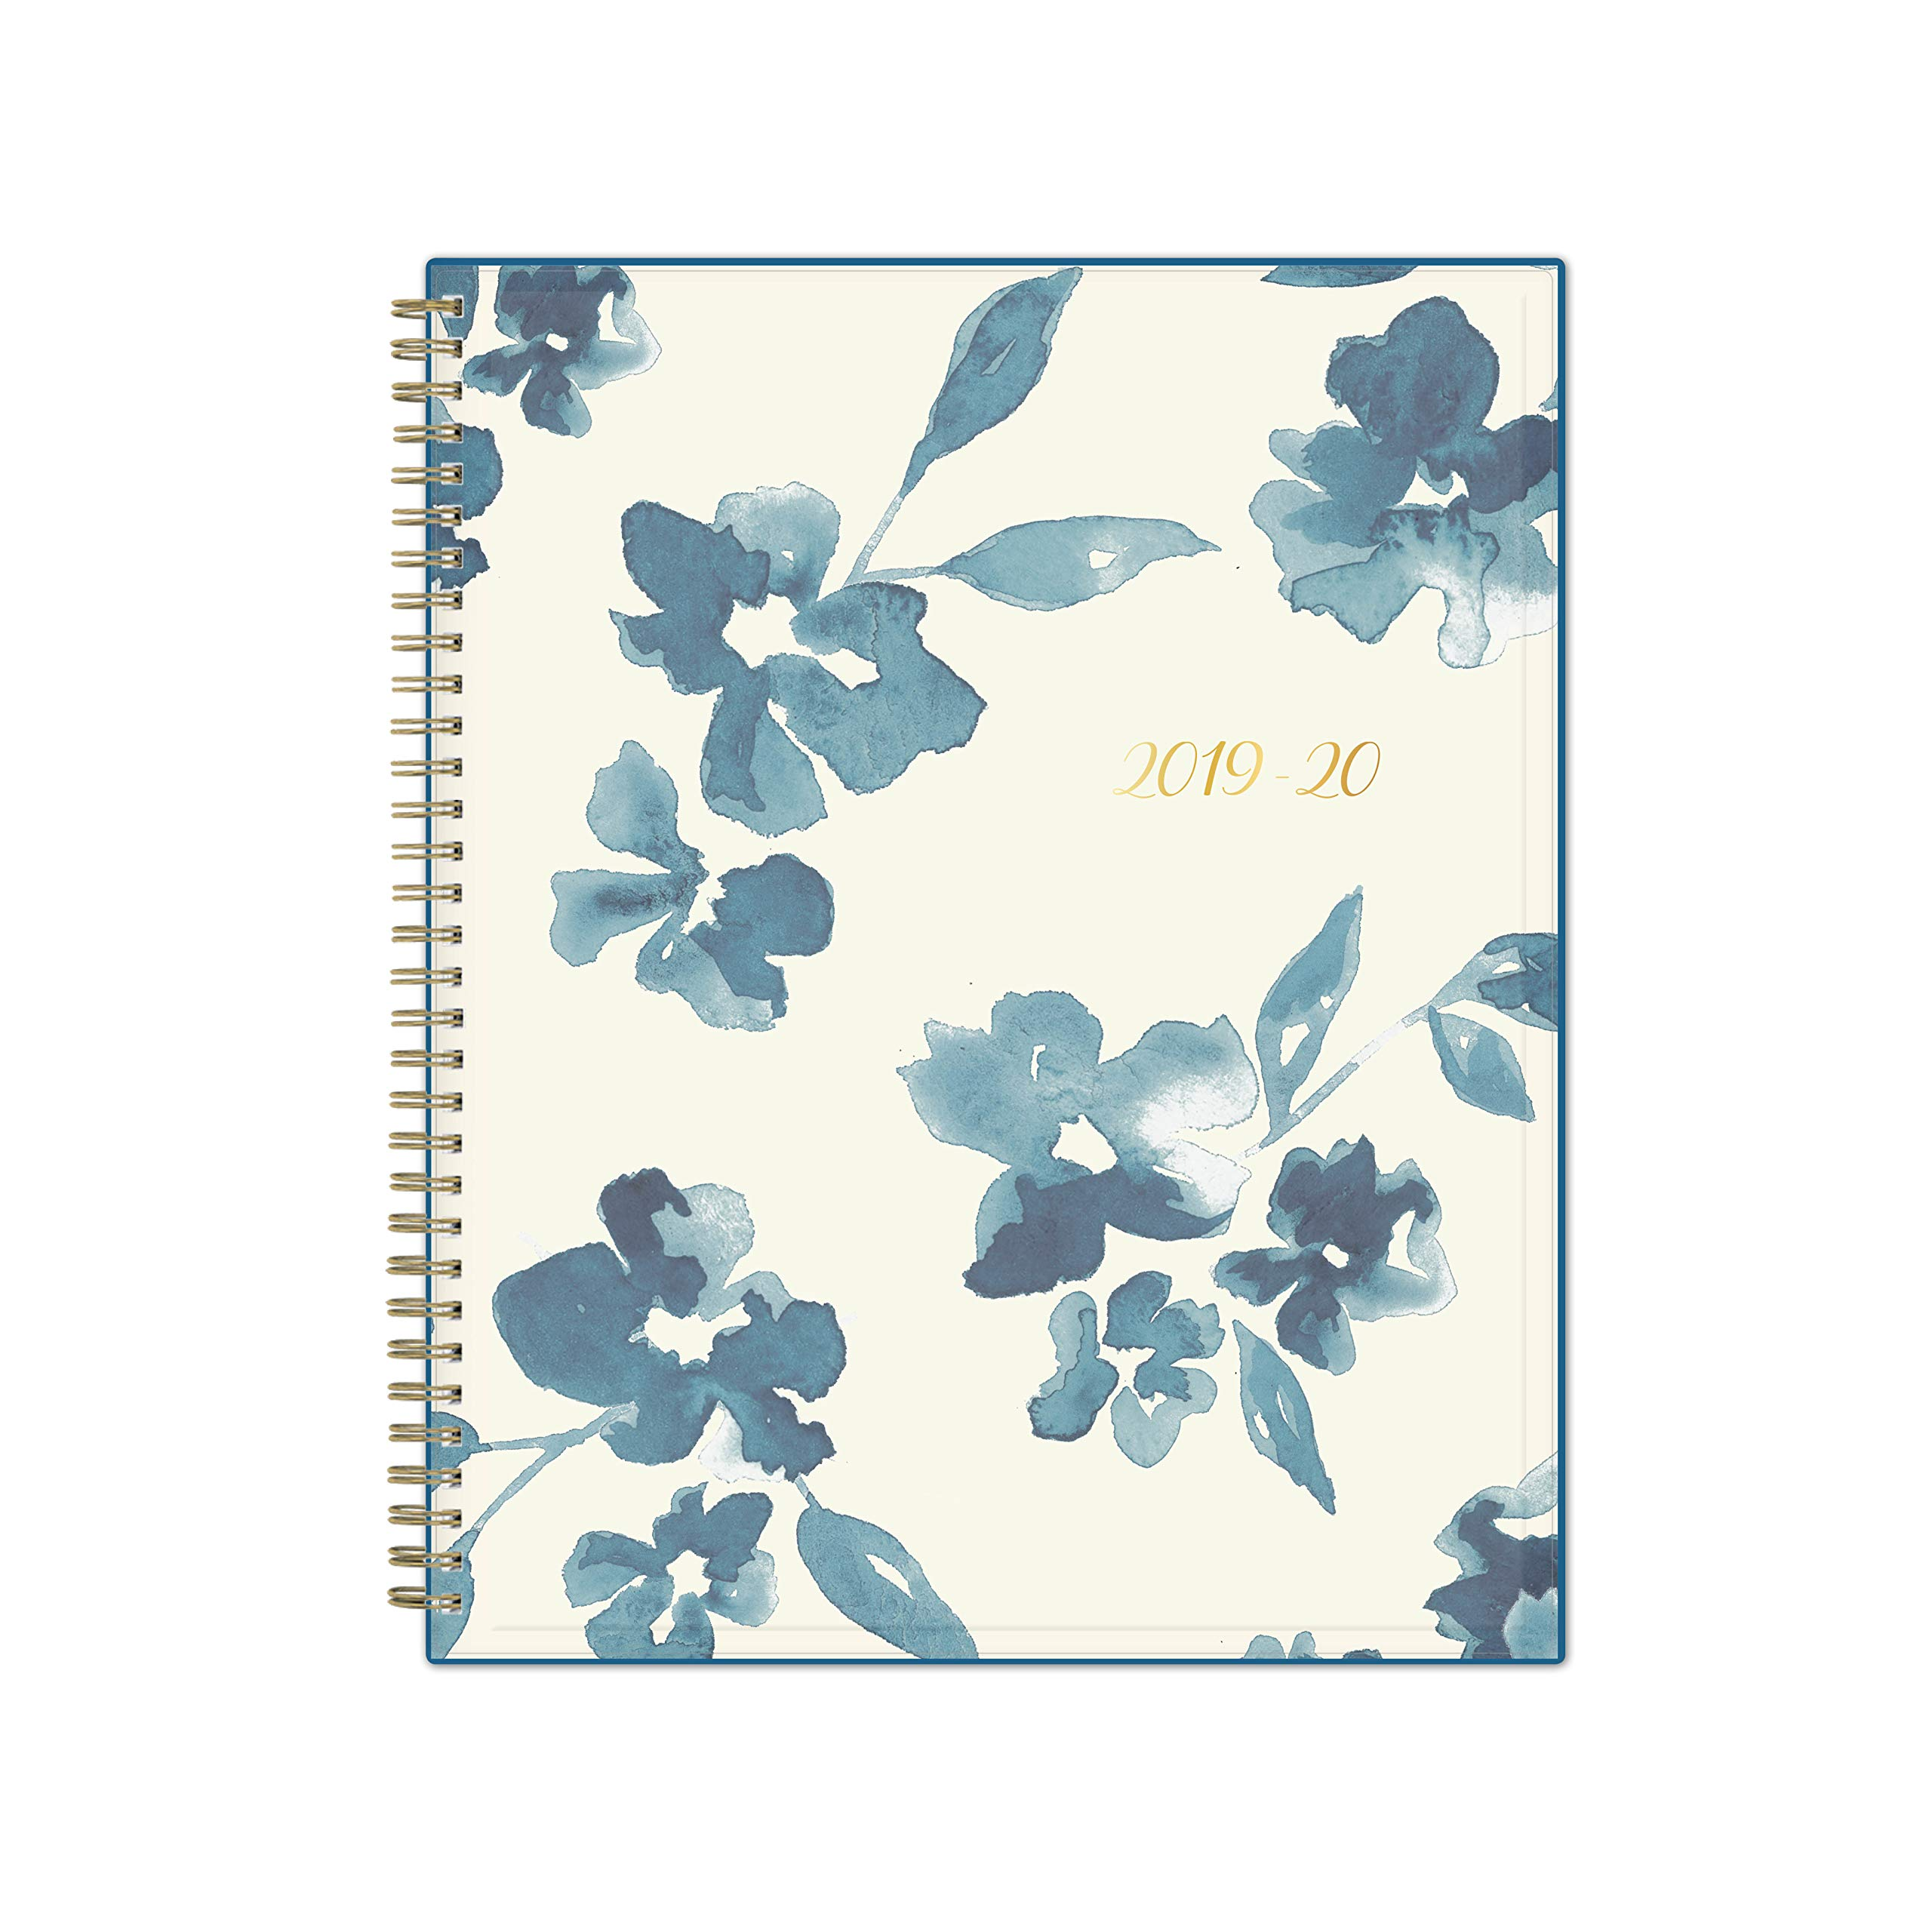 Blue Sky 2019-2020 Academic Year Weekly & Monthly Planner, Flexible Cover, Twin-Wire Binding, 8.5'' x 11'', Bakah Blue by Blue Sky (Image #2)